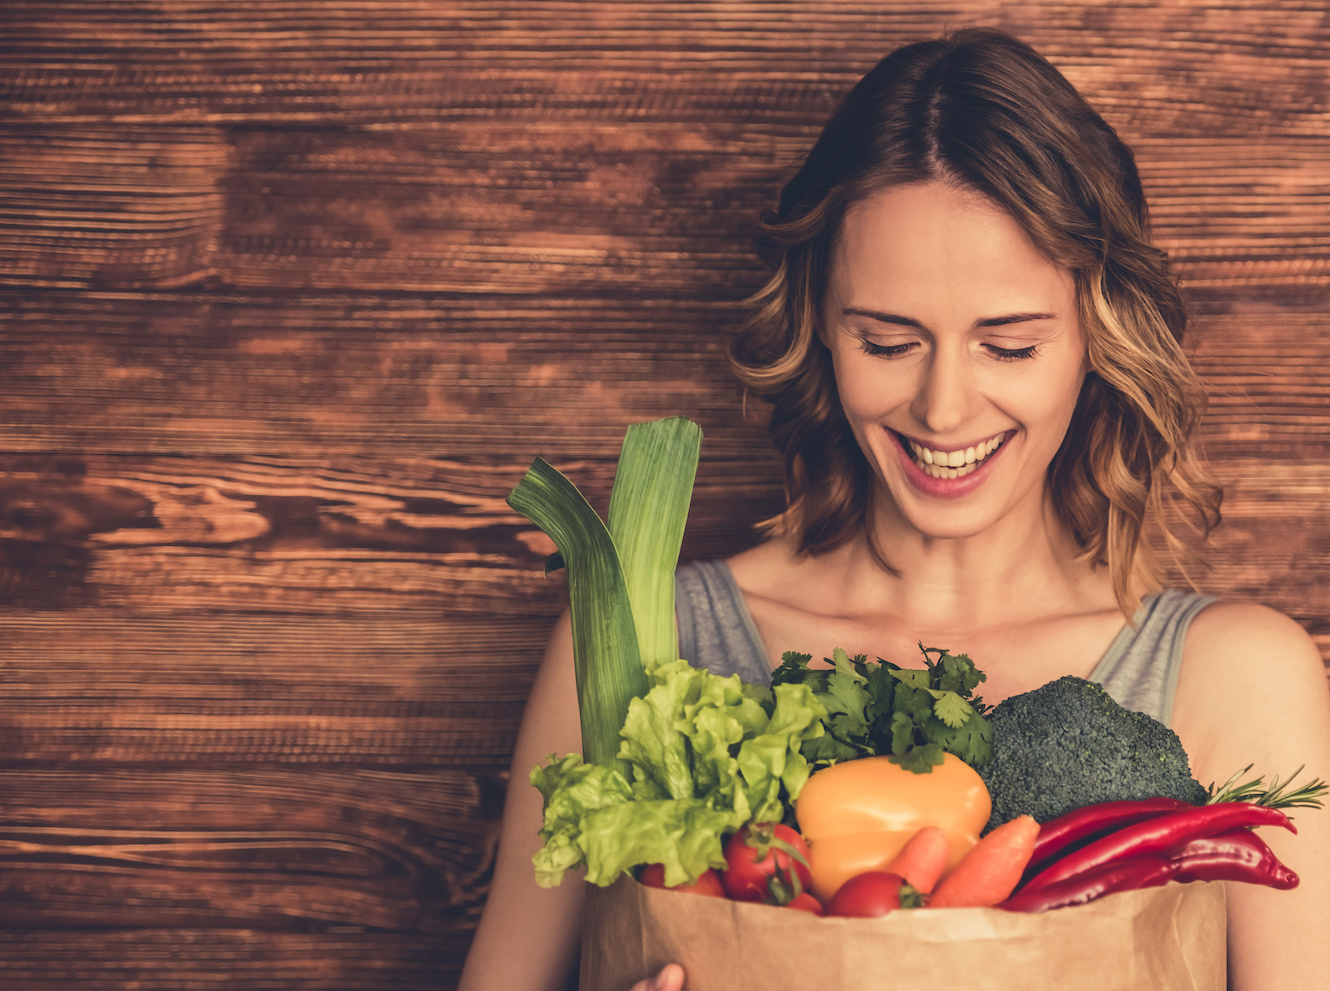 The Astonishing Effects of Food on Your Mood